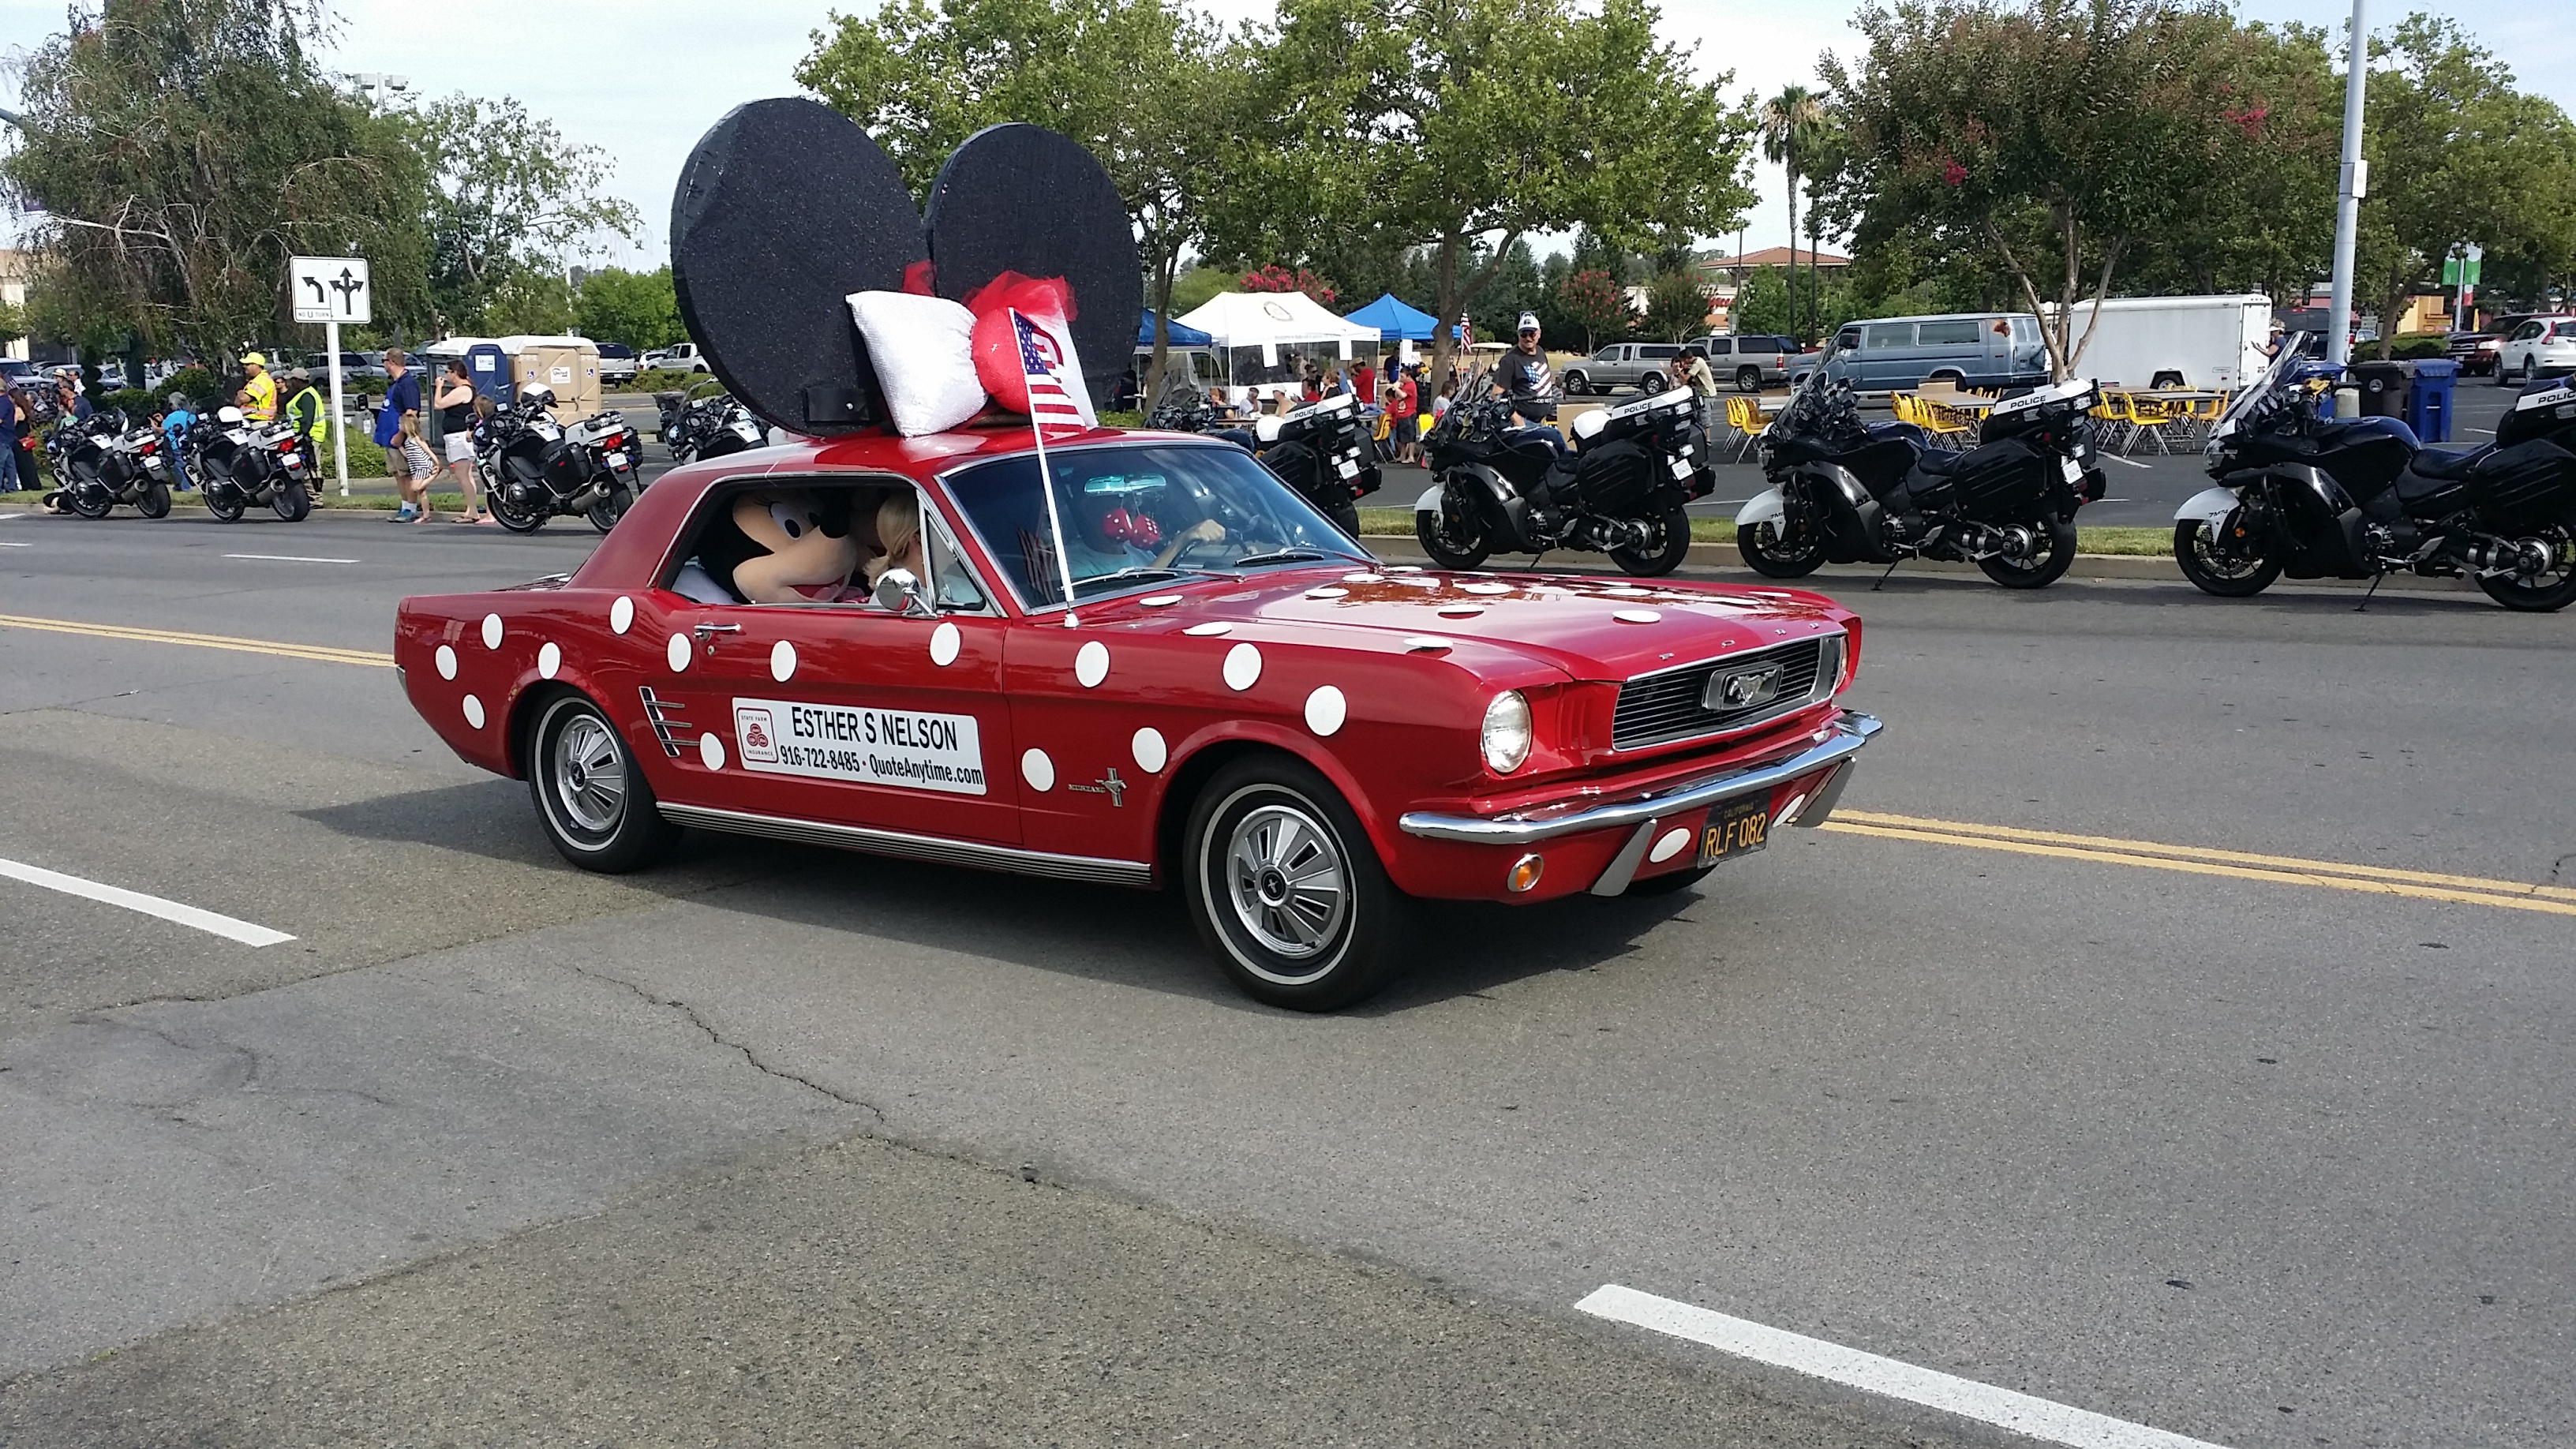 A red Minnie Mouse Ford Mustang